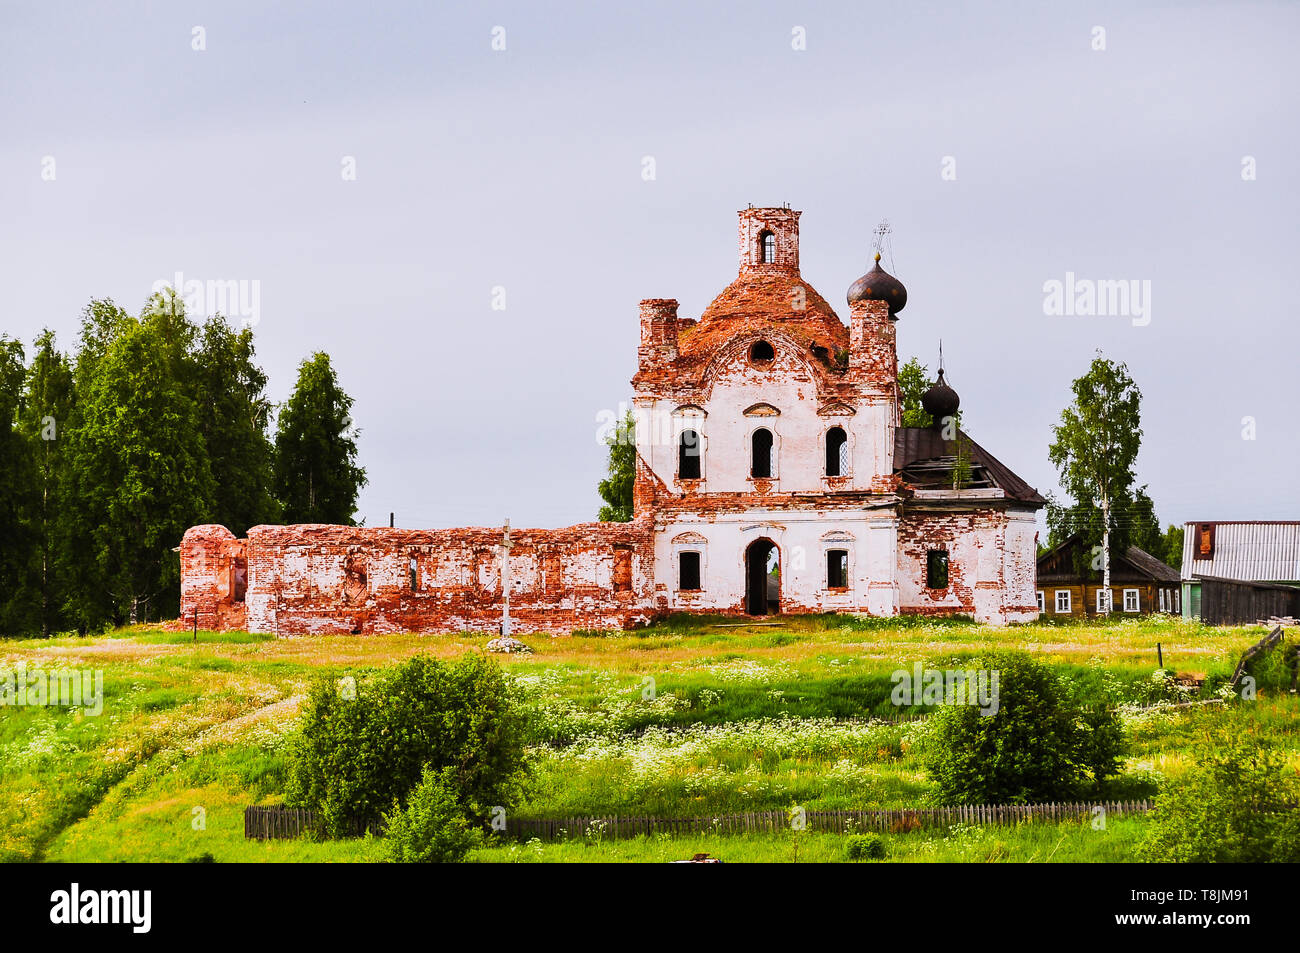 Old, abandoned crumbling church by the Volga-Baltic Waterway - Oblast, Russia - Stock Image